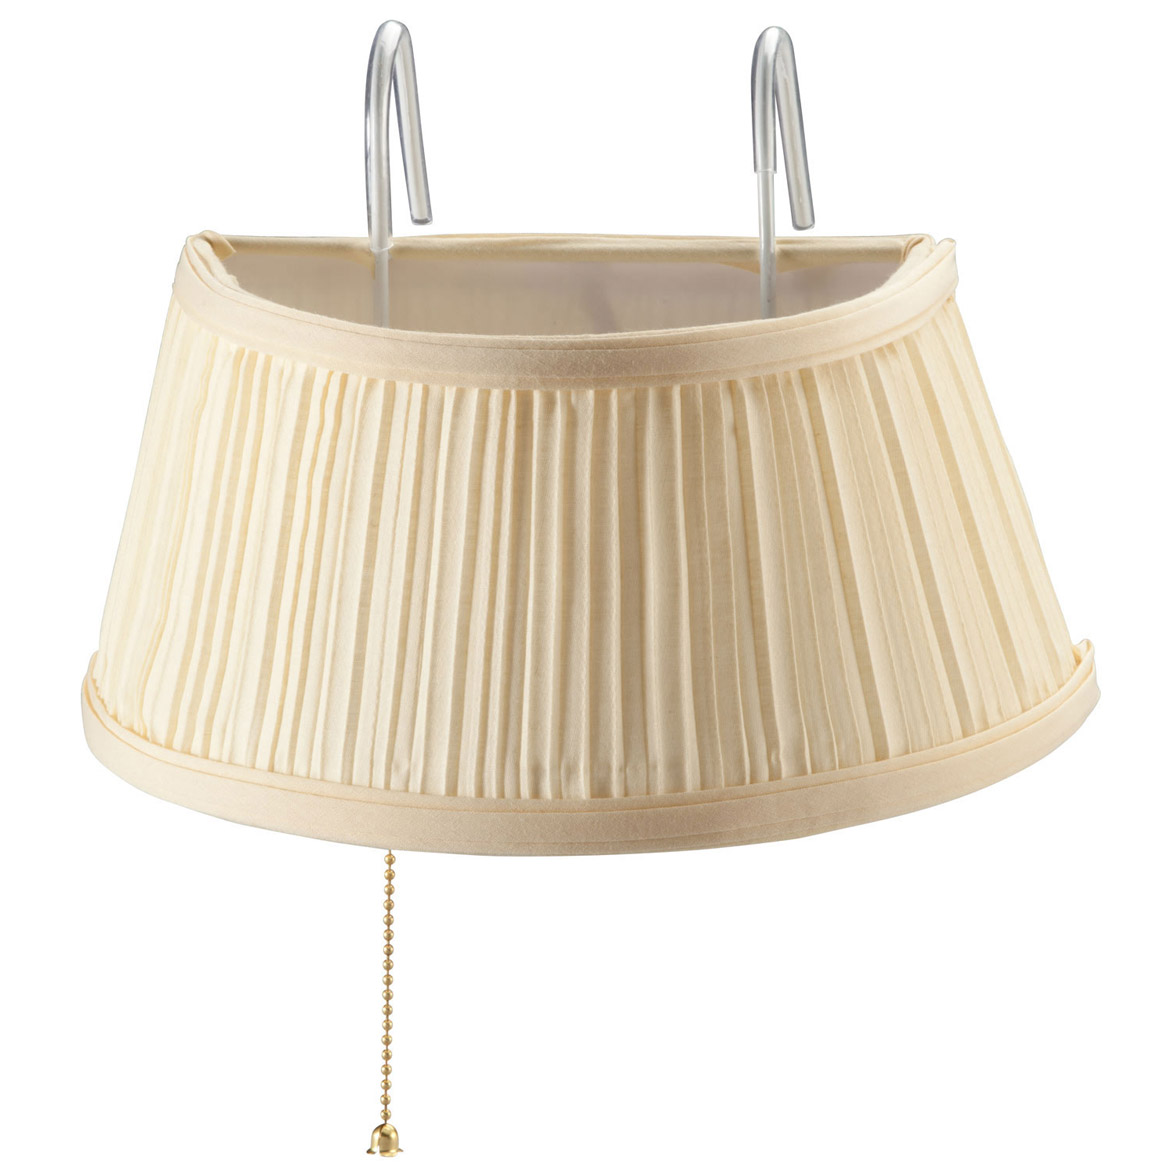 Headboard Light Lamp Over The Bed Walter Drake Pull Chain Fixtures Are Easy To Replace When Switch Wears